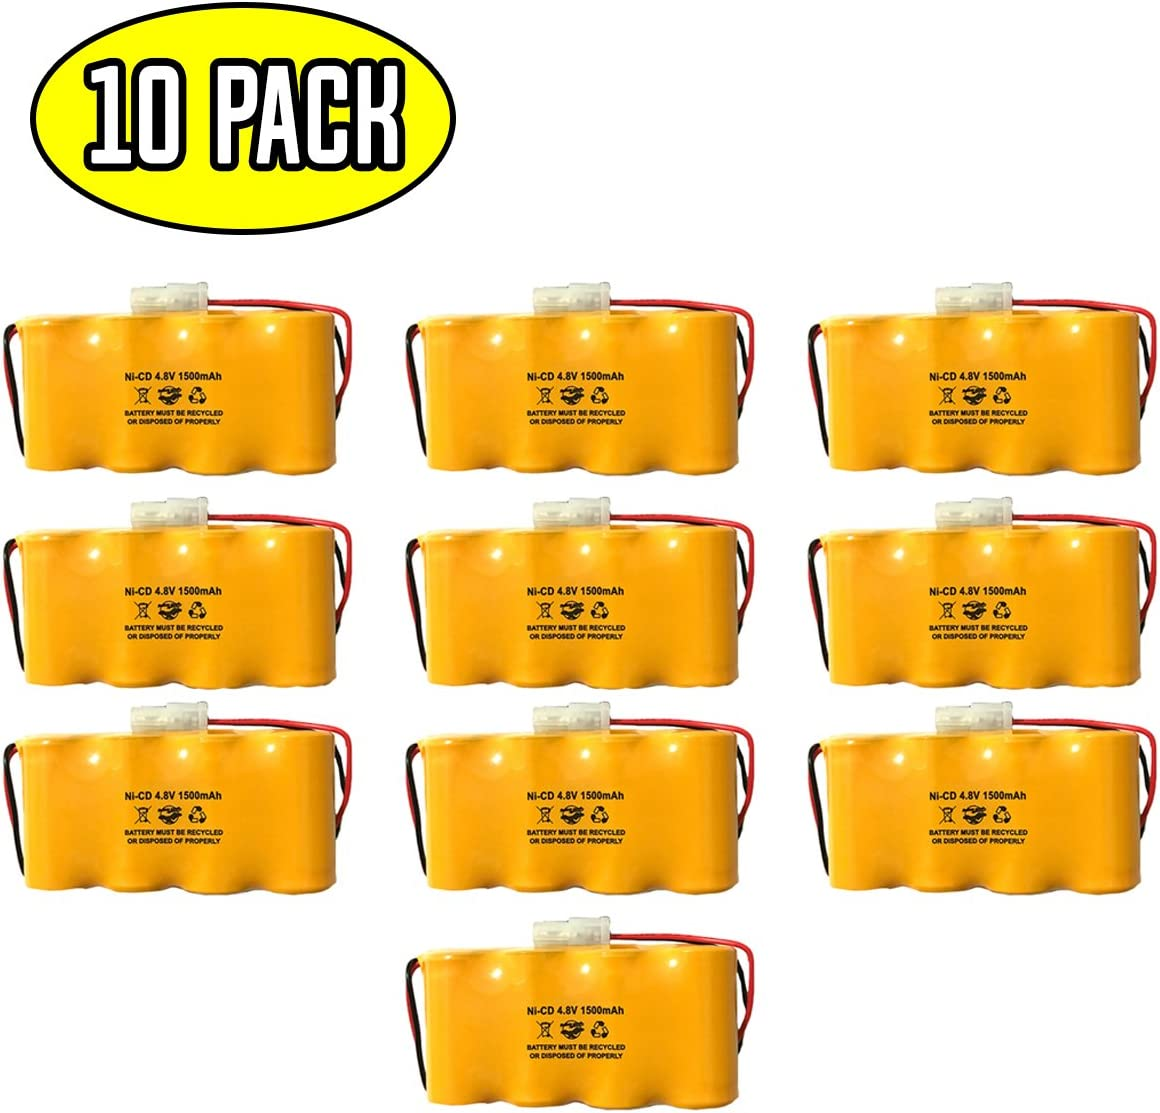 (10 Pack) Prescolite ELB0501N1 Prescolite ENB048015 4.8v 1500mah NiCad Battery Lithonia ELB0501N ELB4814N Dantona Custom-45 Pack Exit Sign Emergency Light